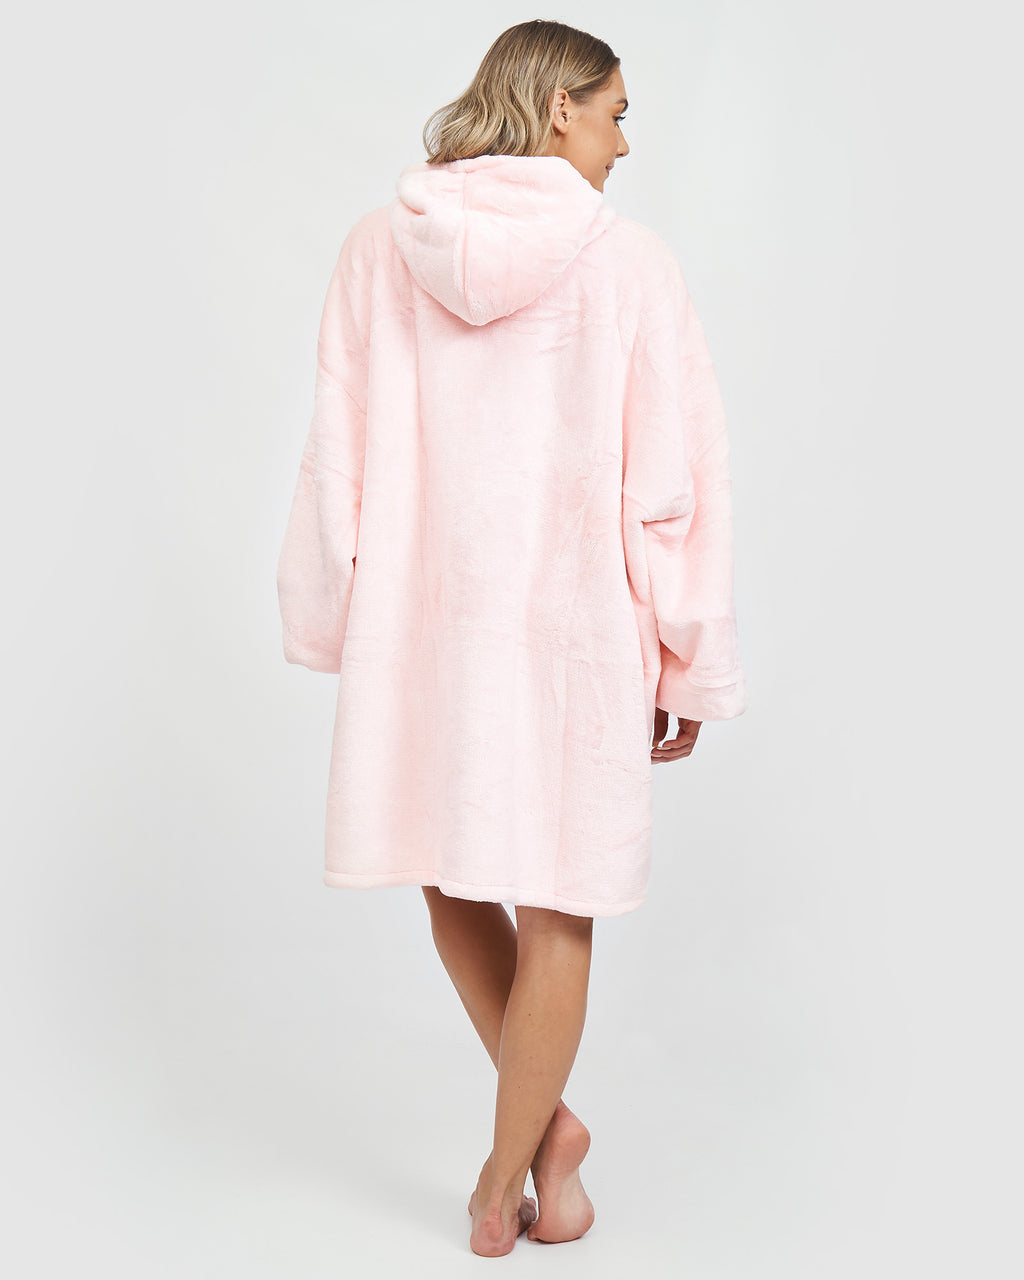 Miz Casa & Co Luxury Hooded Blanket Pink